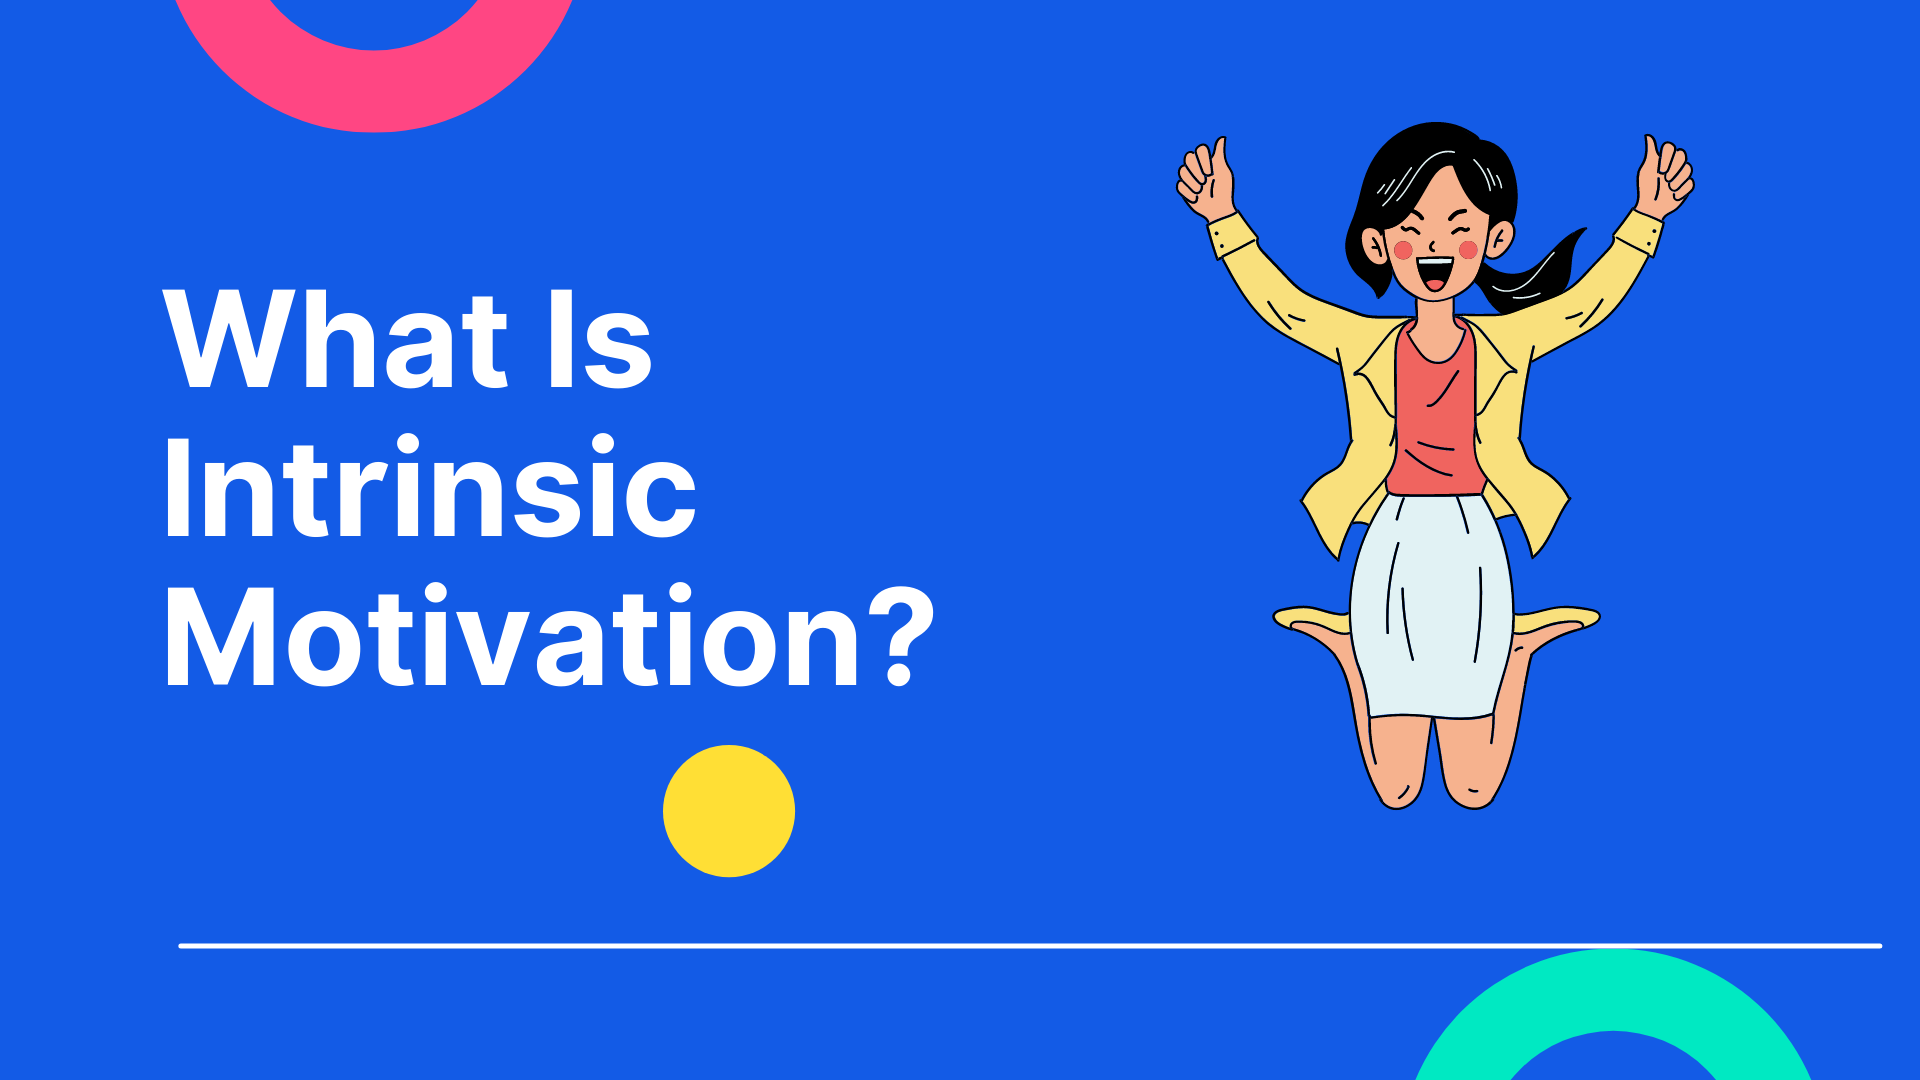 What Is Intrinsic Motivation